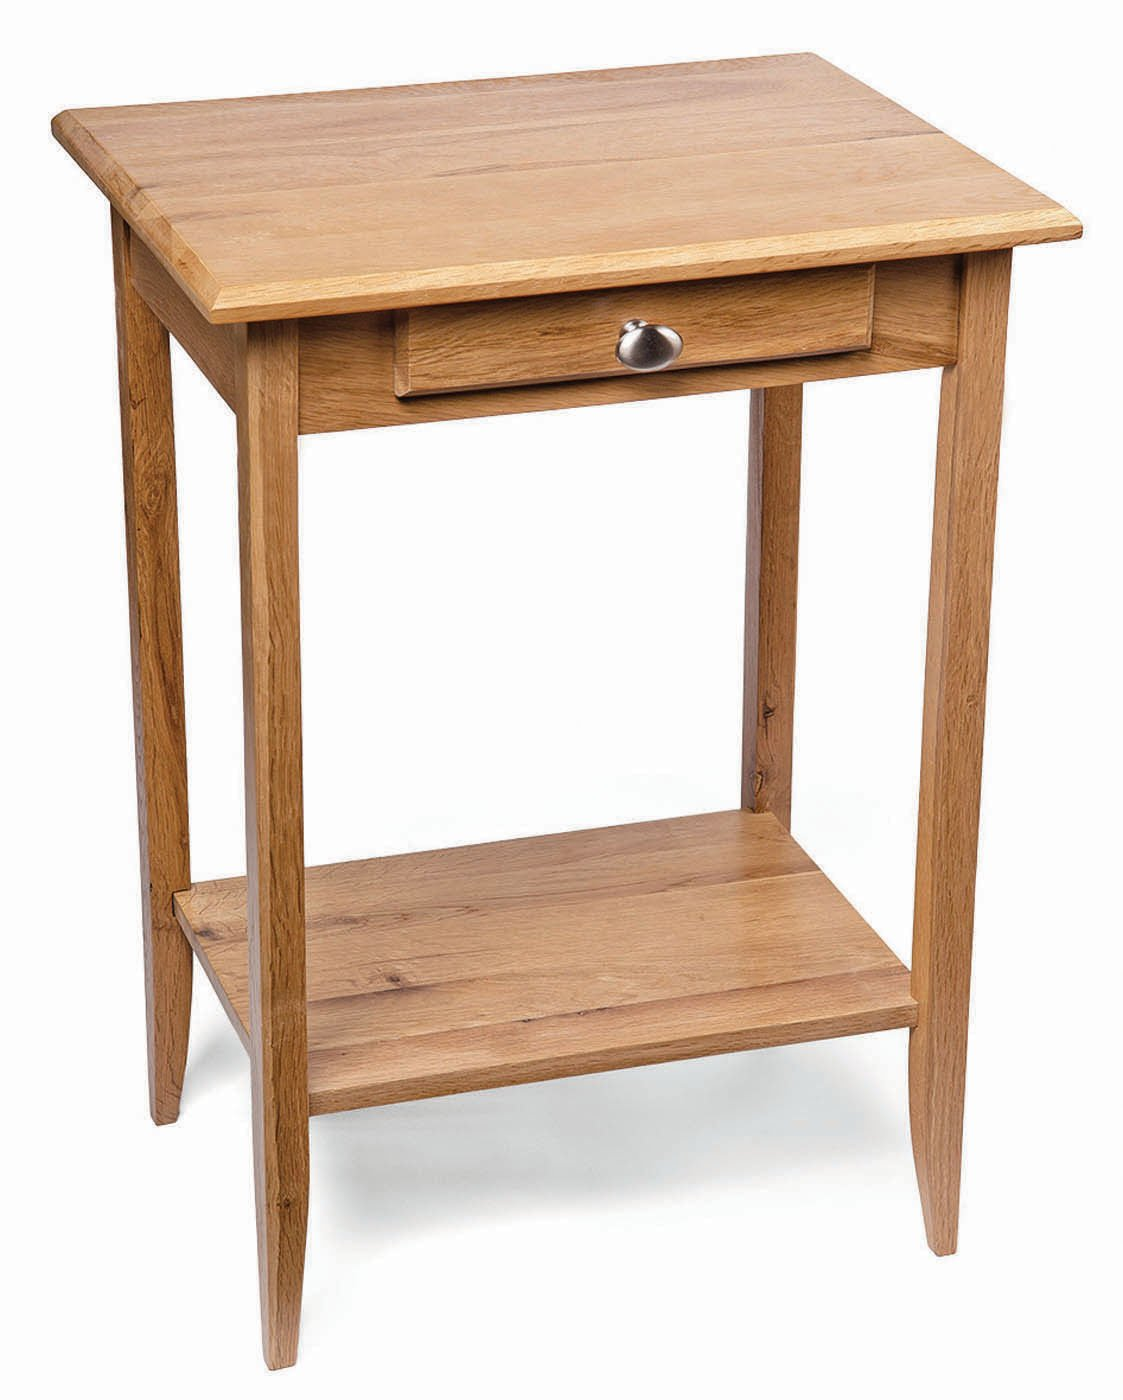 Waverly oak small console table in light oak finish solid wooden waverly oak small console table in light oak finish solid wooden telephone bedside lamp side end stand amazon kitchen home aloadofball Images